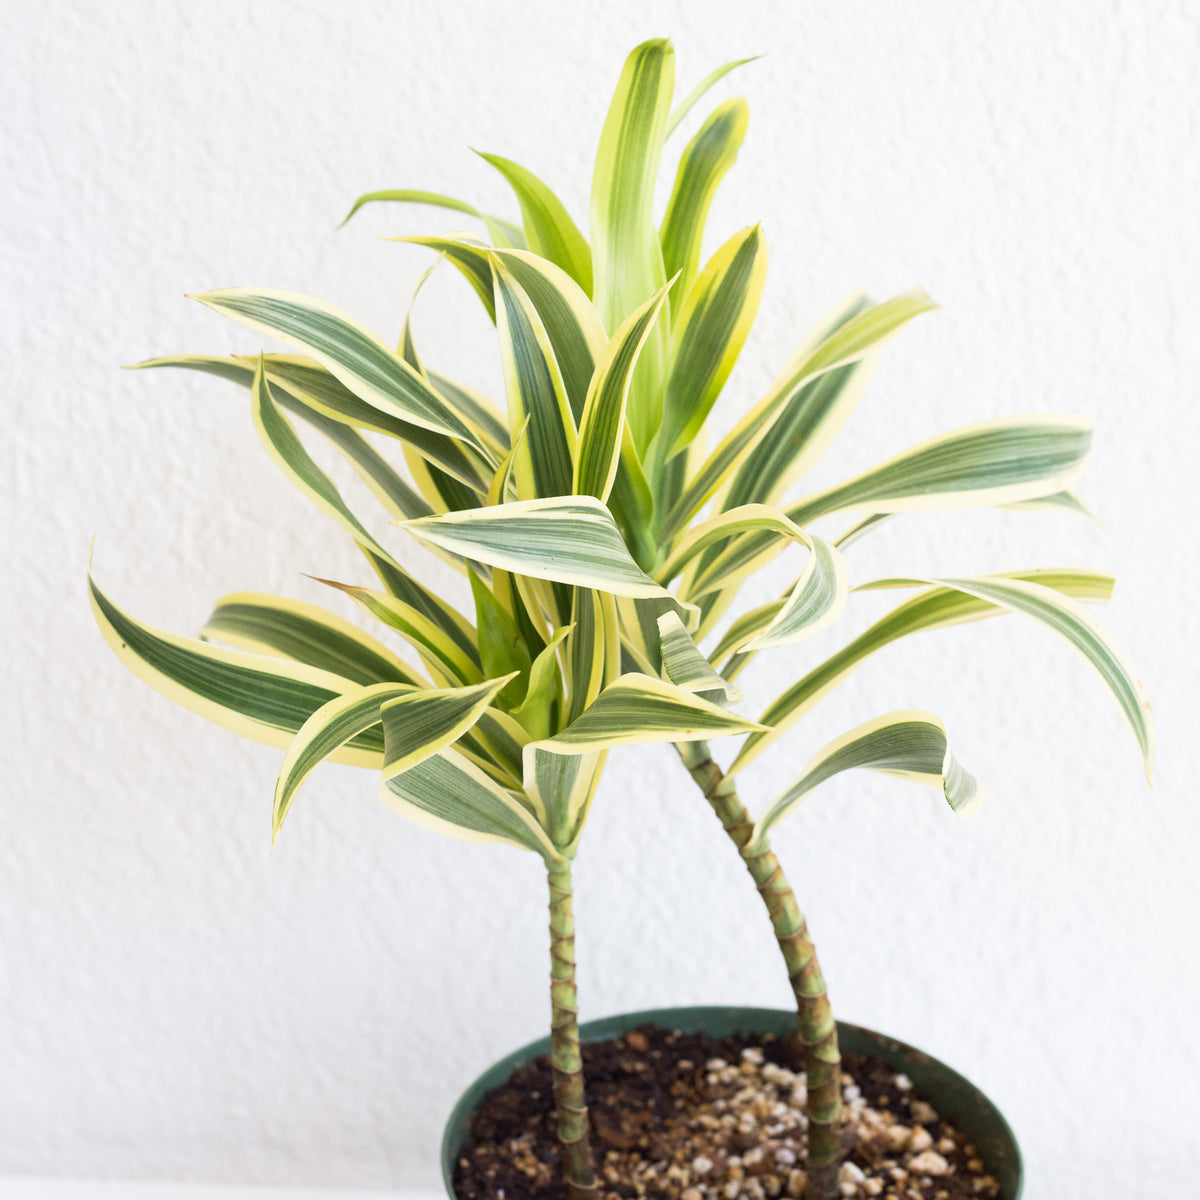 "Dracaena reflexa 'Song of India - Song of India 6"" Shippable"